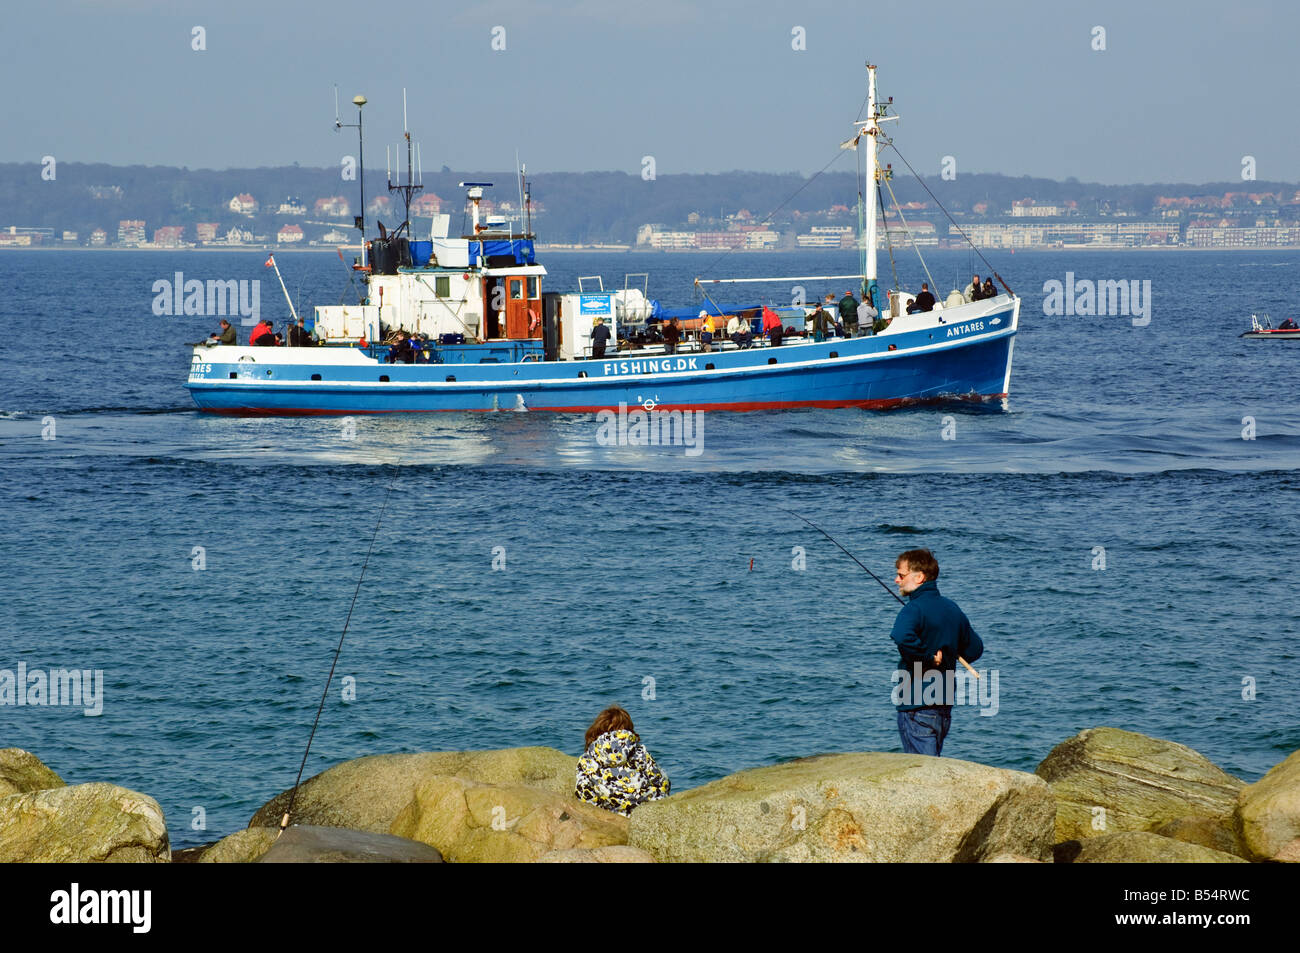 Anglers and fishing boat Helsingør Denmark looking across the Öresund strait to Helsingborg in Sweden - Stock Image